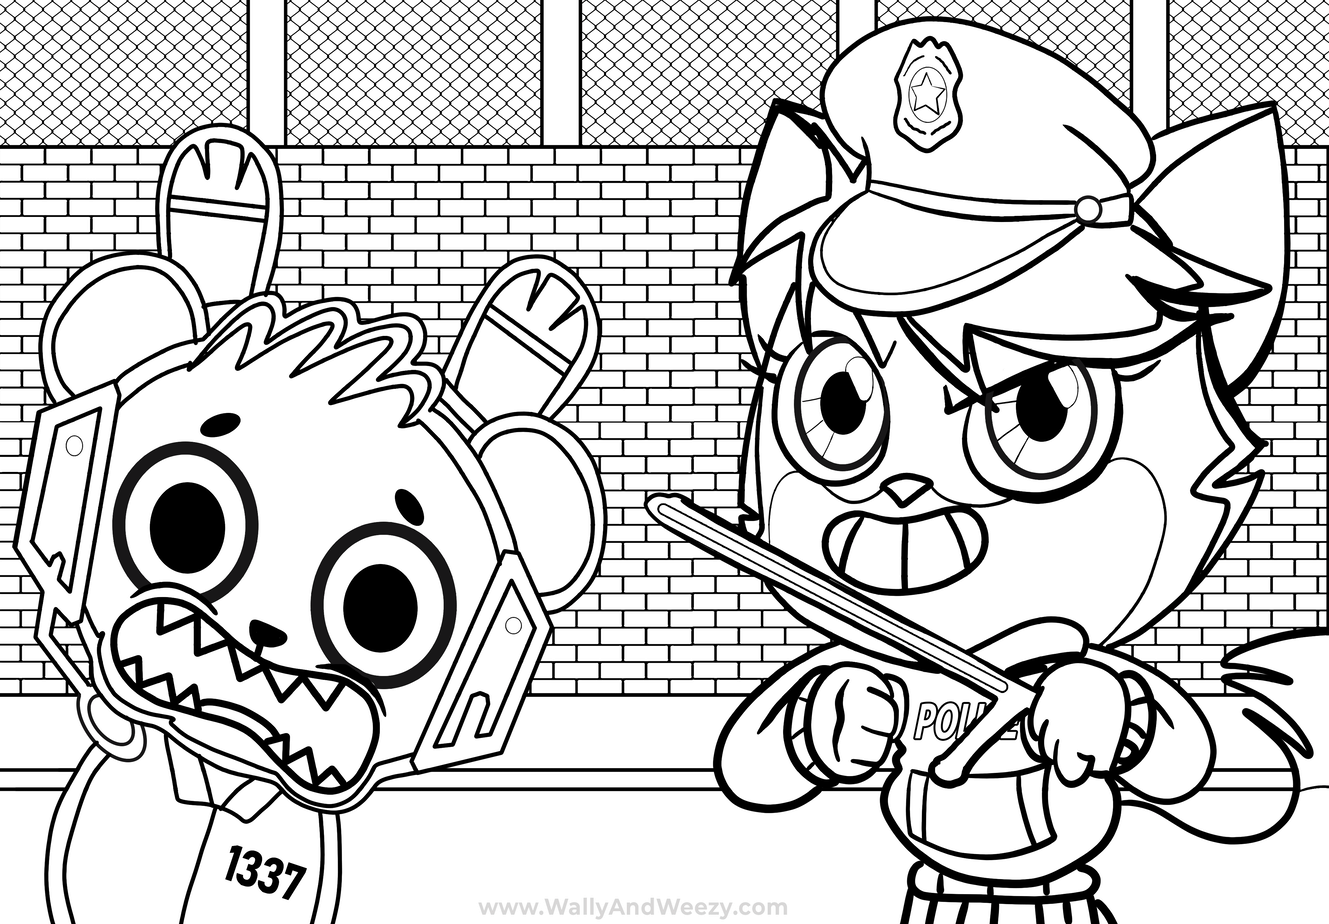 combo panda coloring coloring pictures of combo panda google search in 2020 coloring panda combo